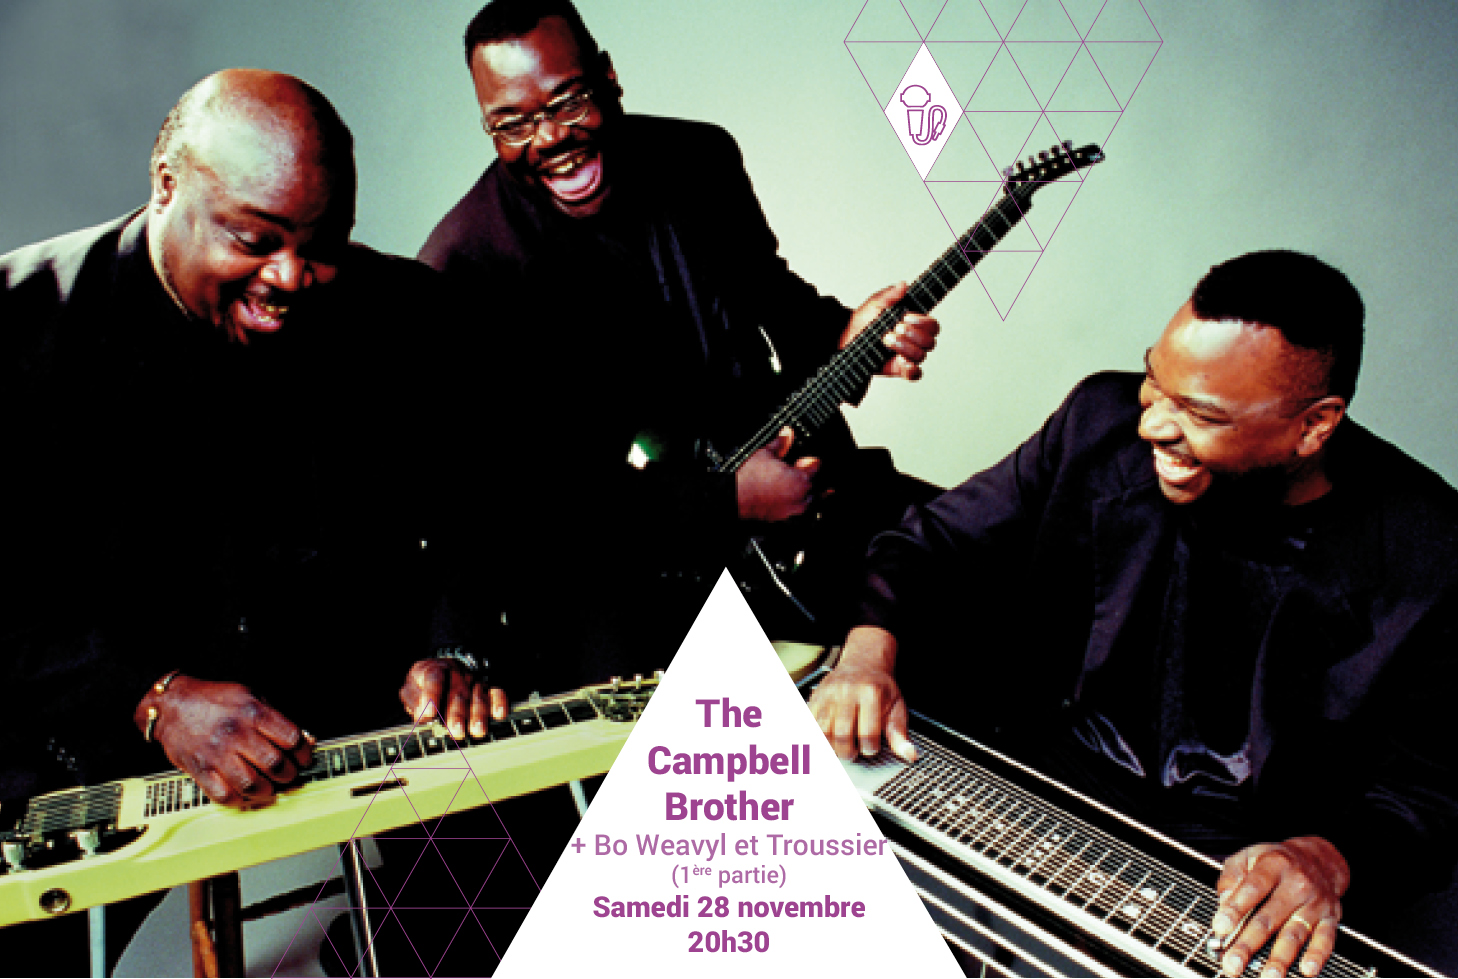 THE CAMPBELL BROTHERS // BO WEAVIL + TROUSSIER (1ère partie)